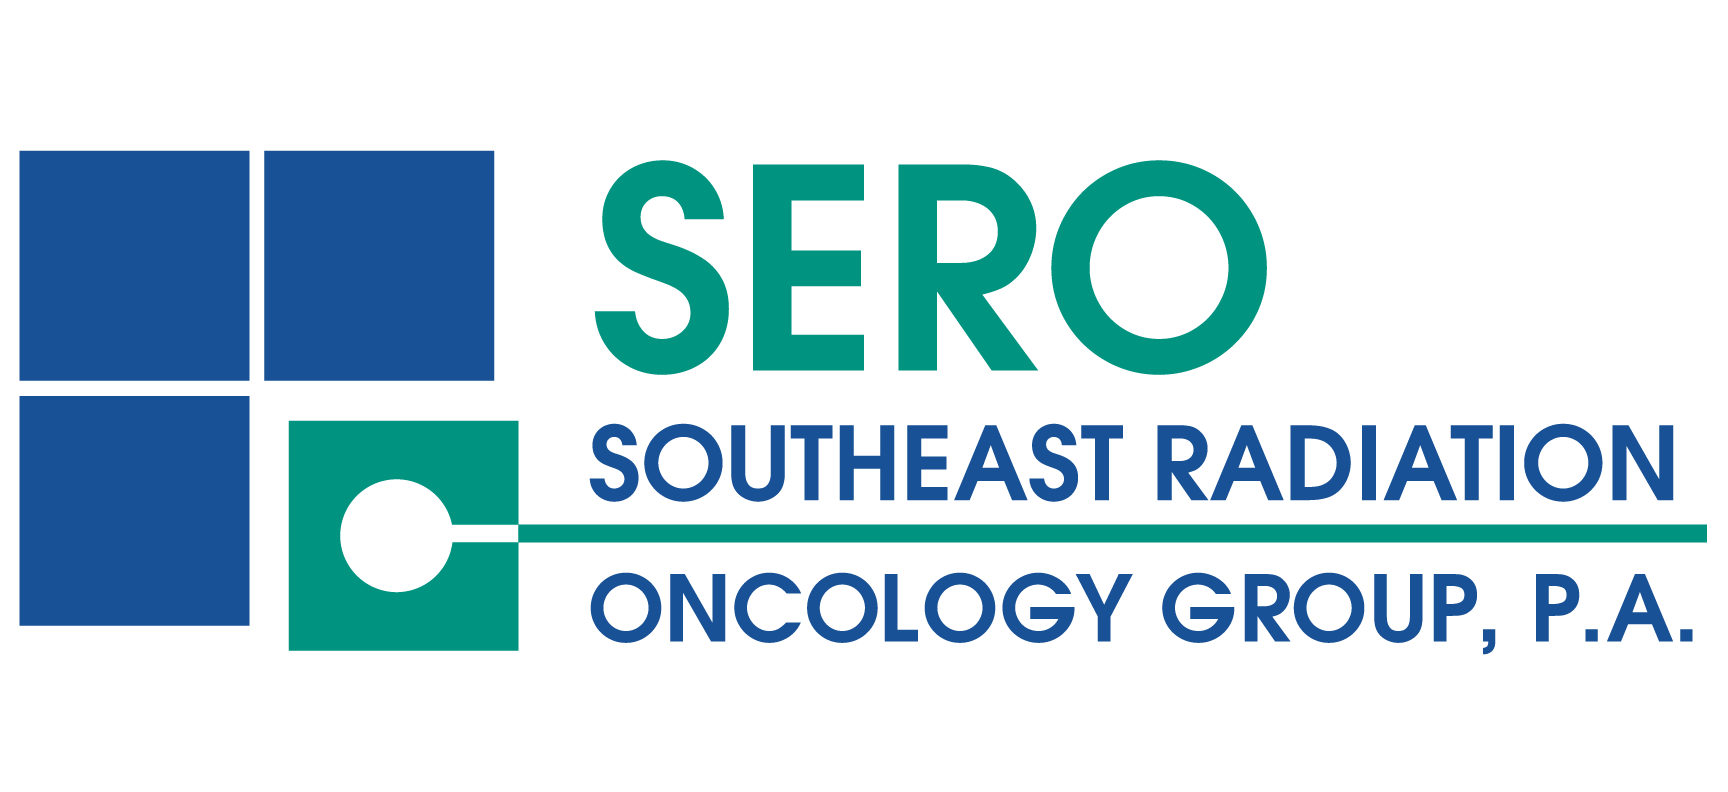 Southeast Radiation Oncology Group